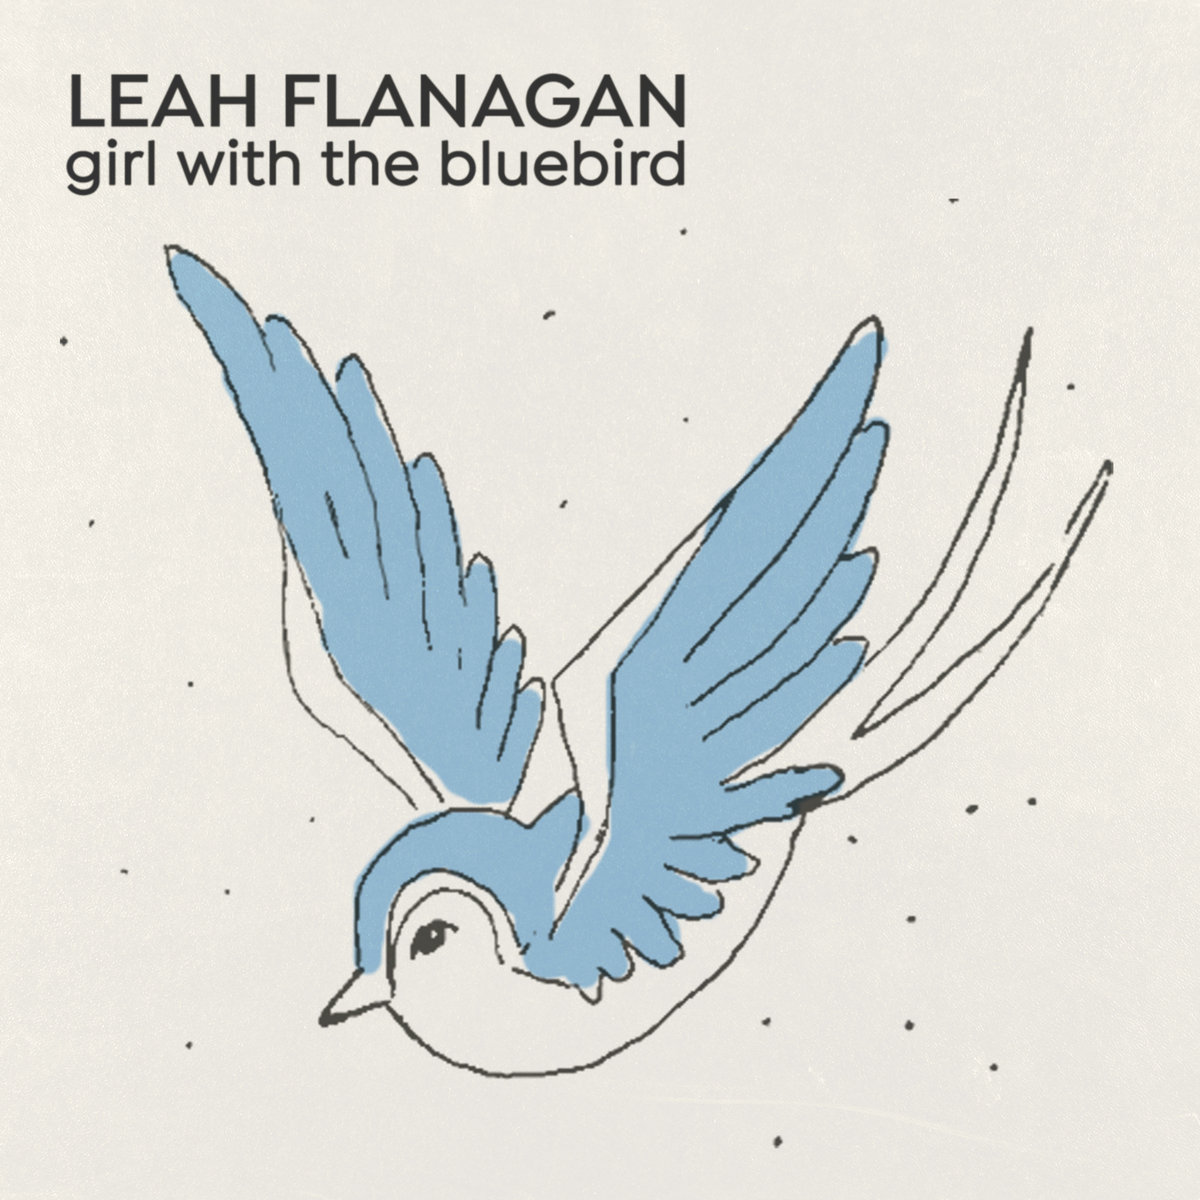 Girl With The Bluebird Tattoo | Leah Flanagan